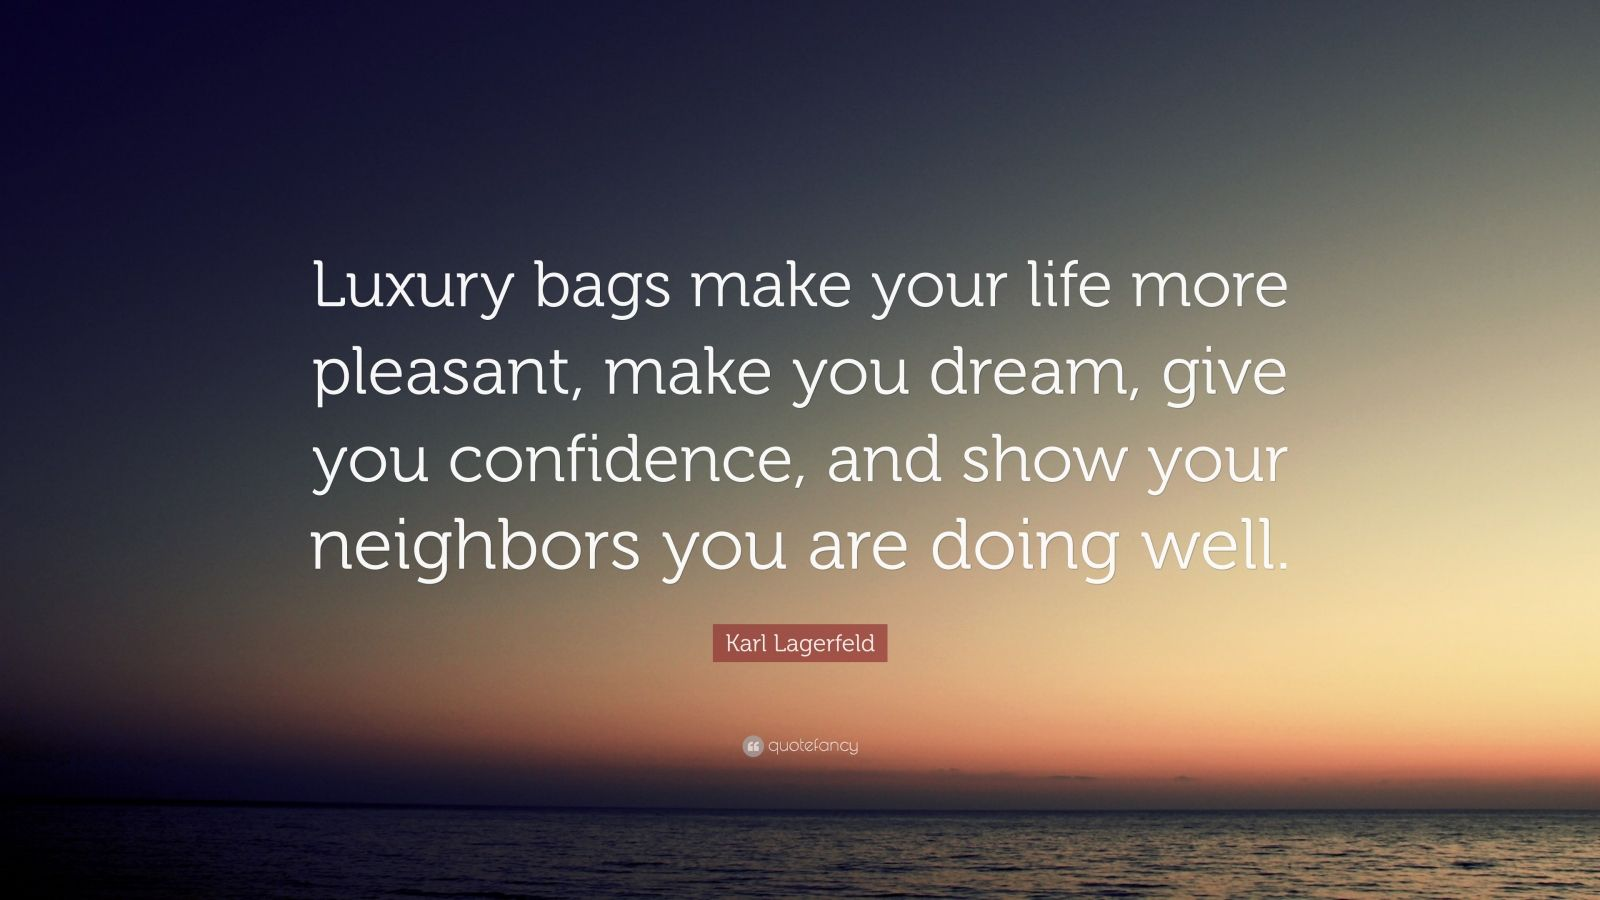 """Karl Lagerfeld Quote: """"Luxury bags make your life more pleasant, make you dream, give you confidence, and show your neighbors you are doing well."""""""